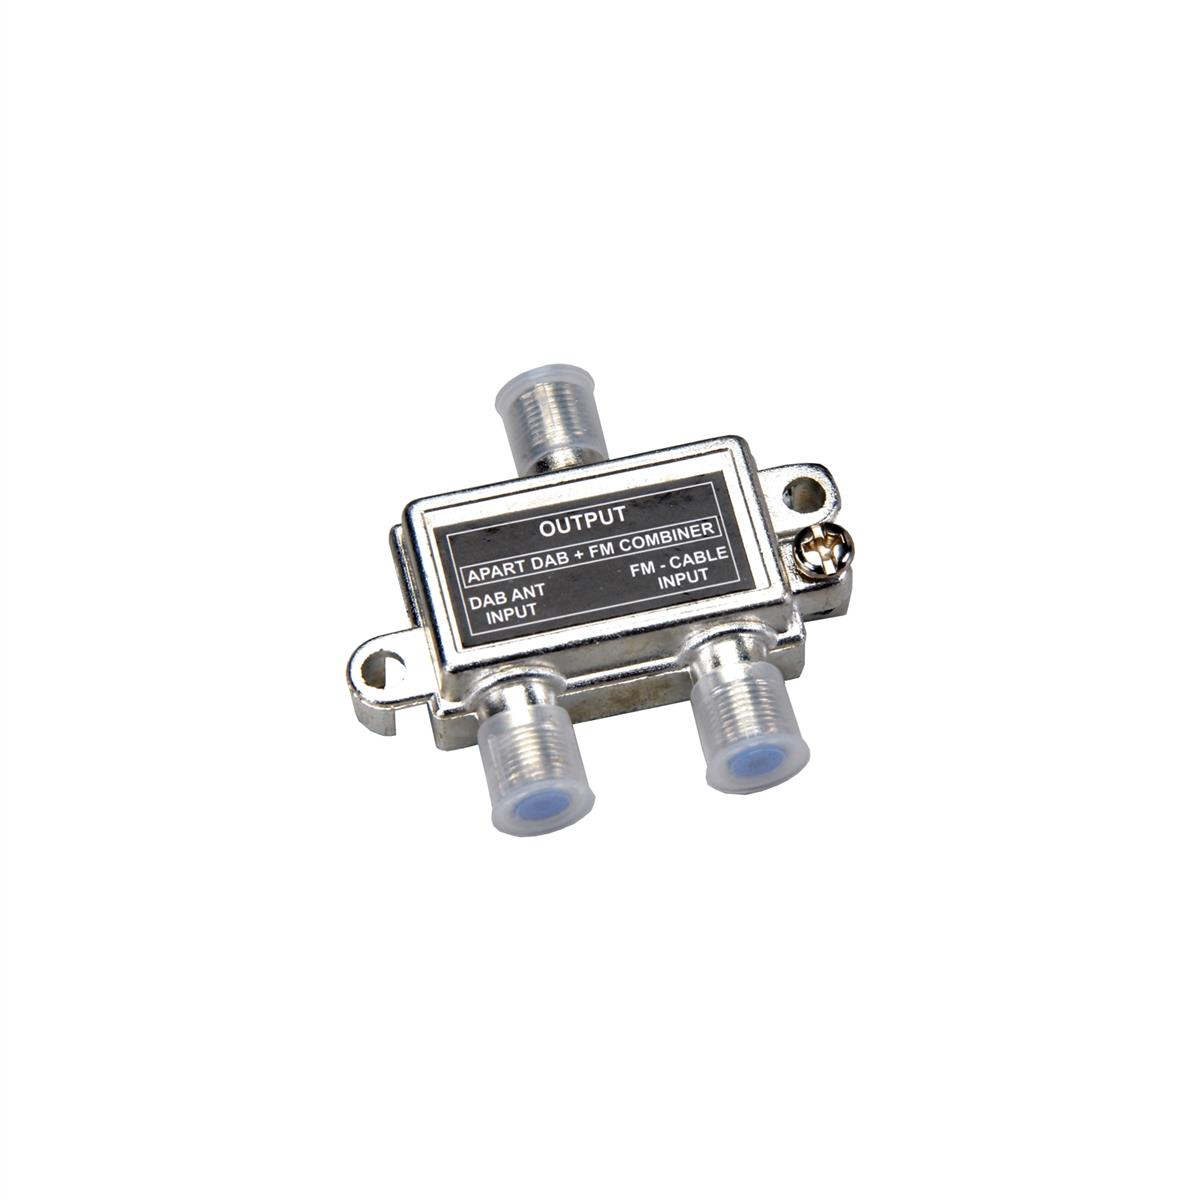 Apart-combiner for DAB compatible tuners